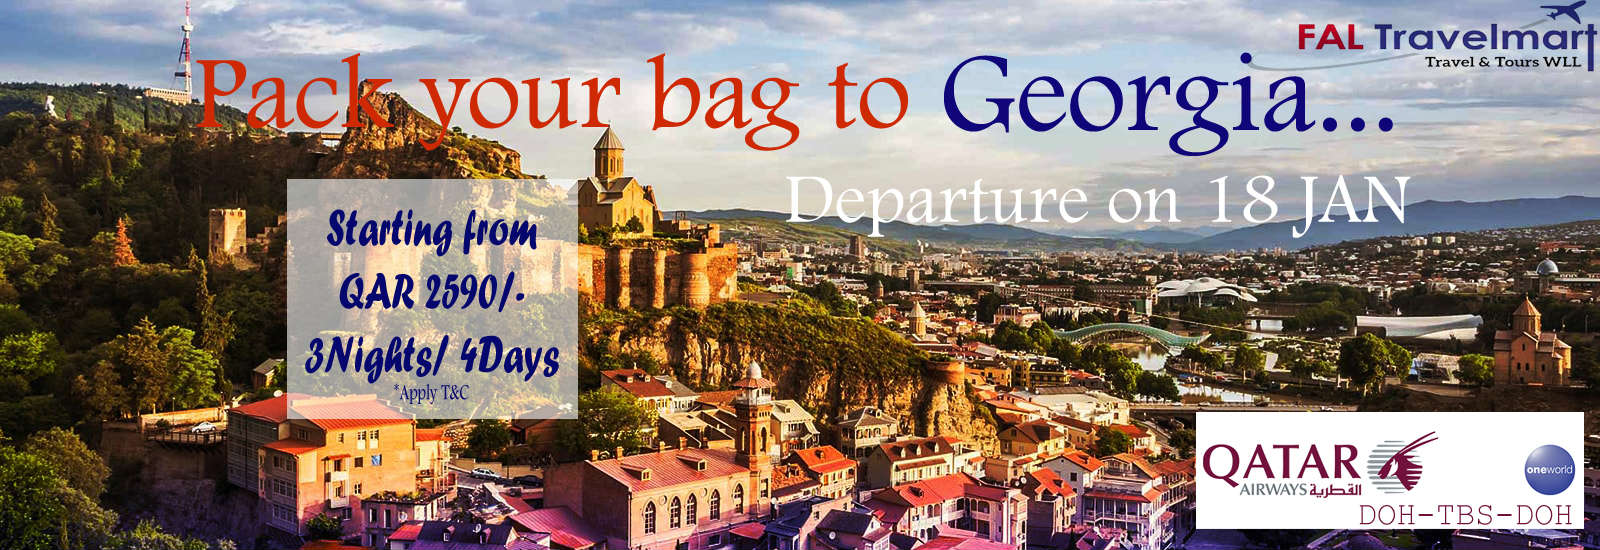 Georgia Package from Qatar by Fal Travel Mart 2590 Only